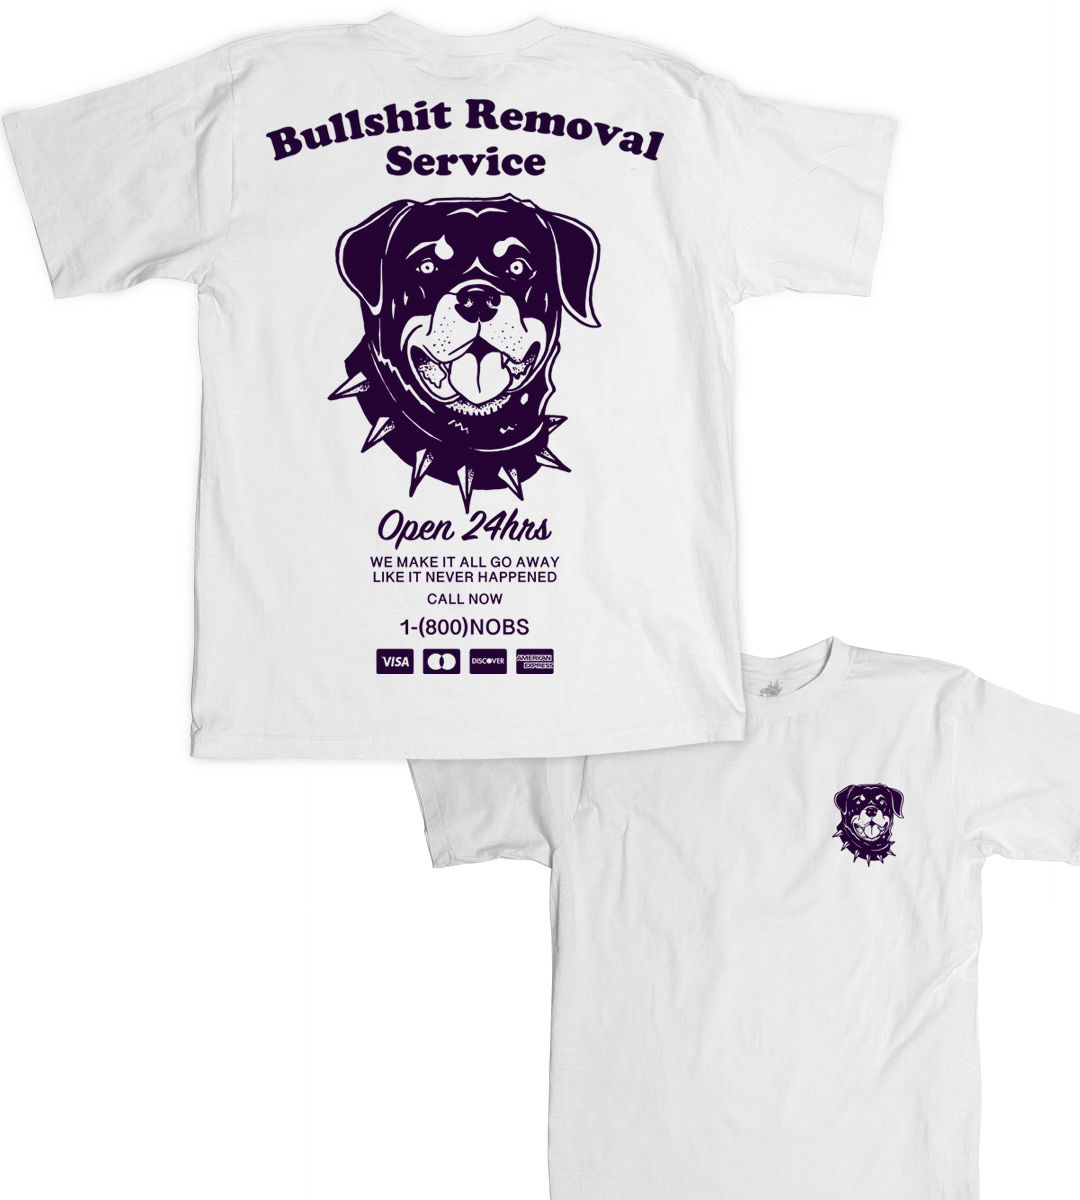 Bullshit Removal Service - product image